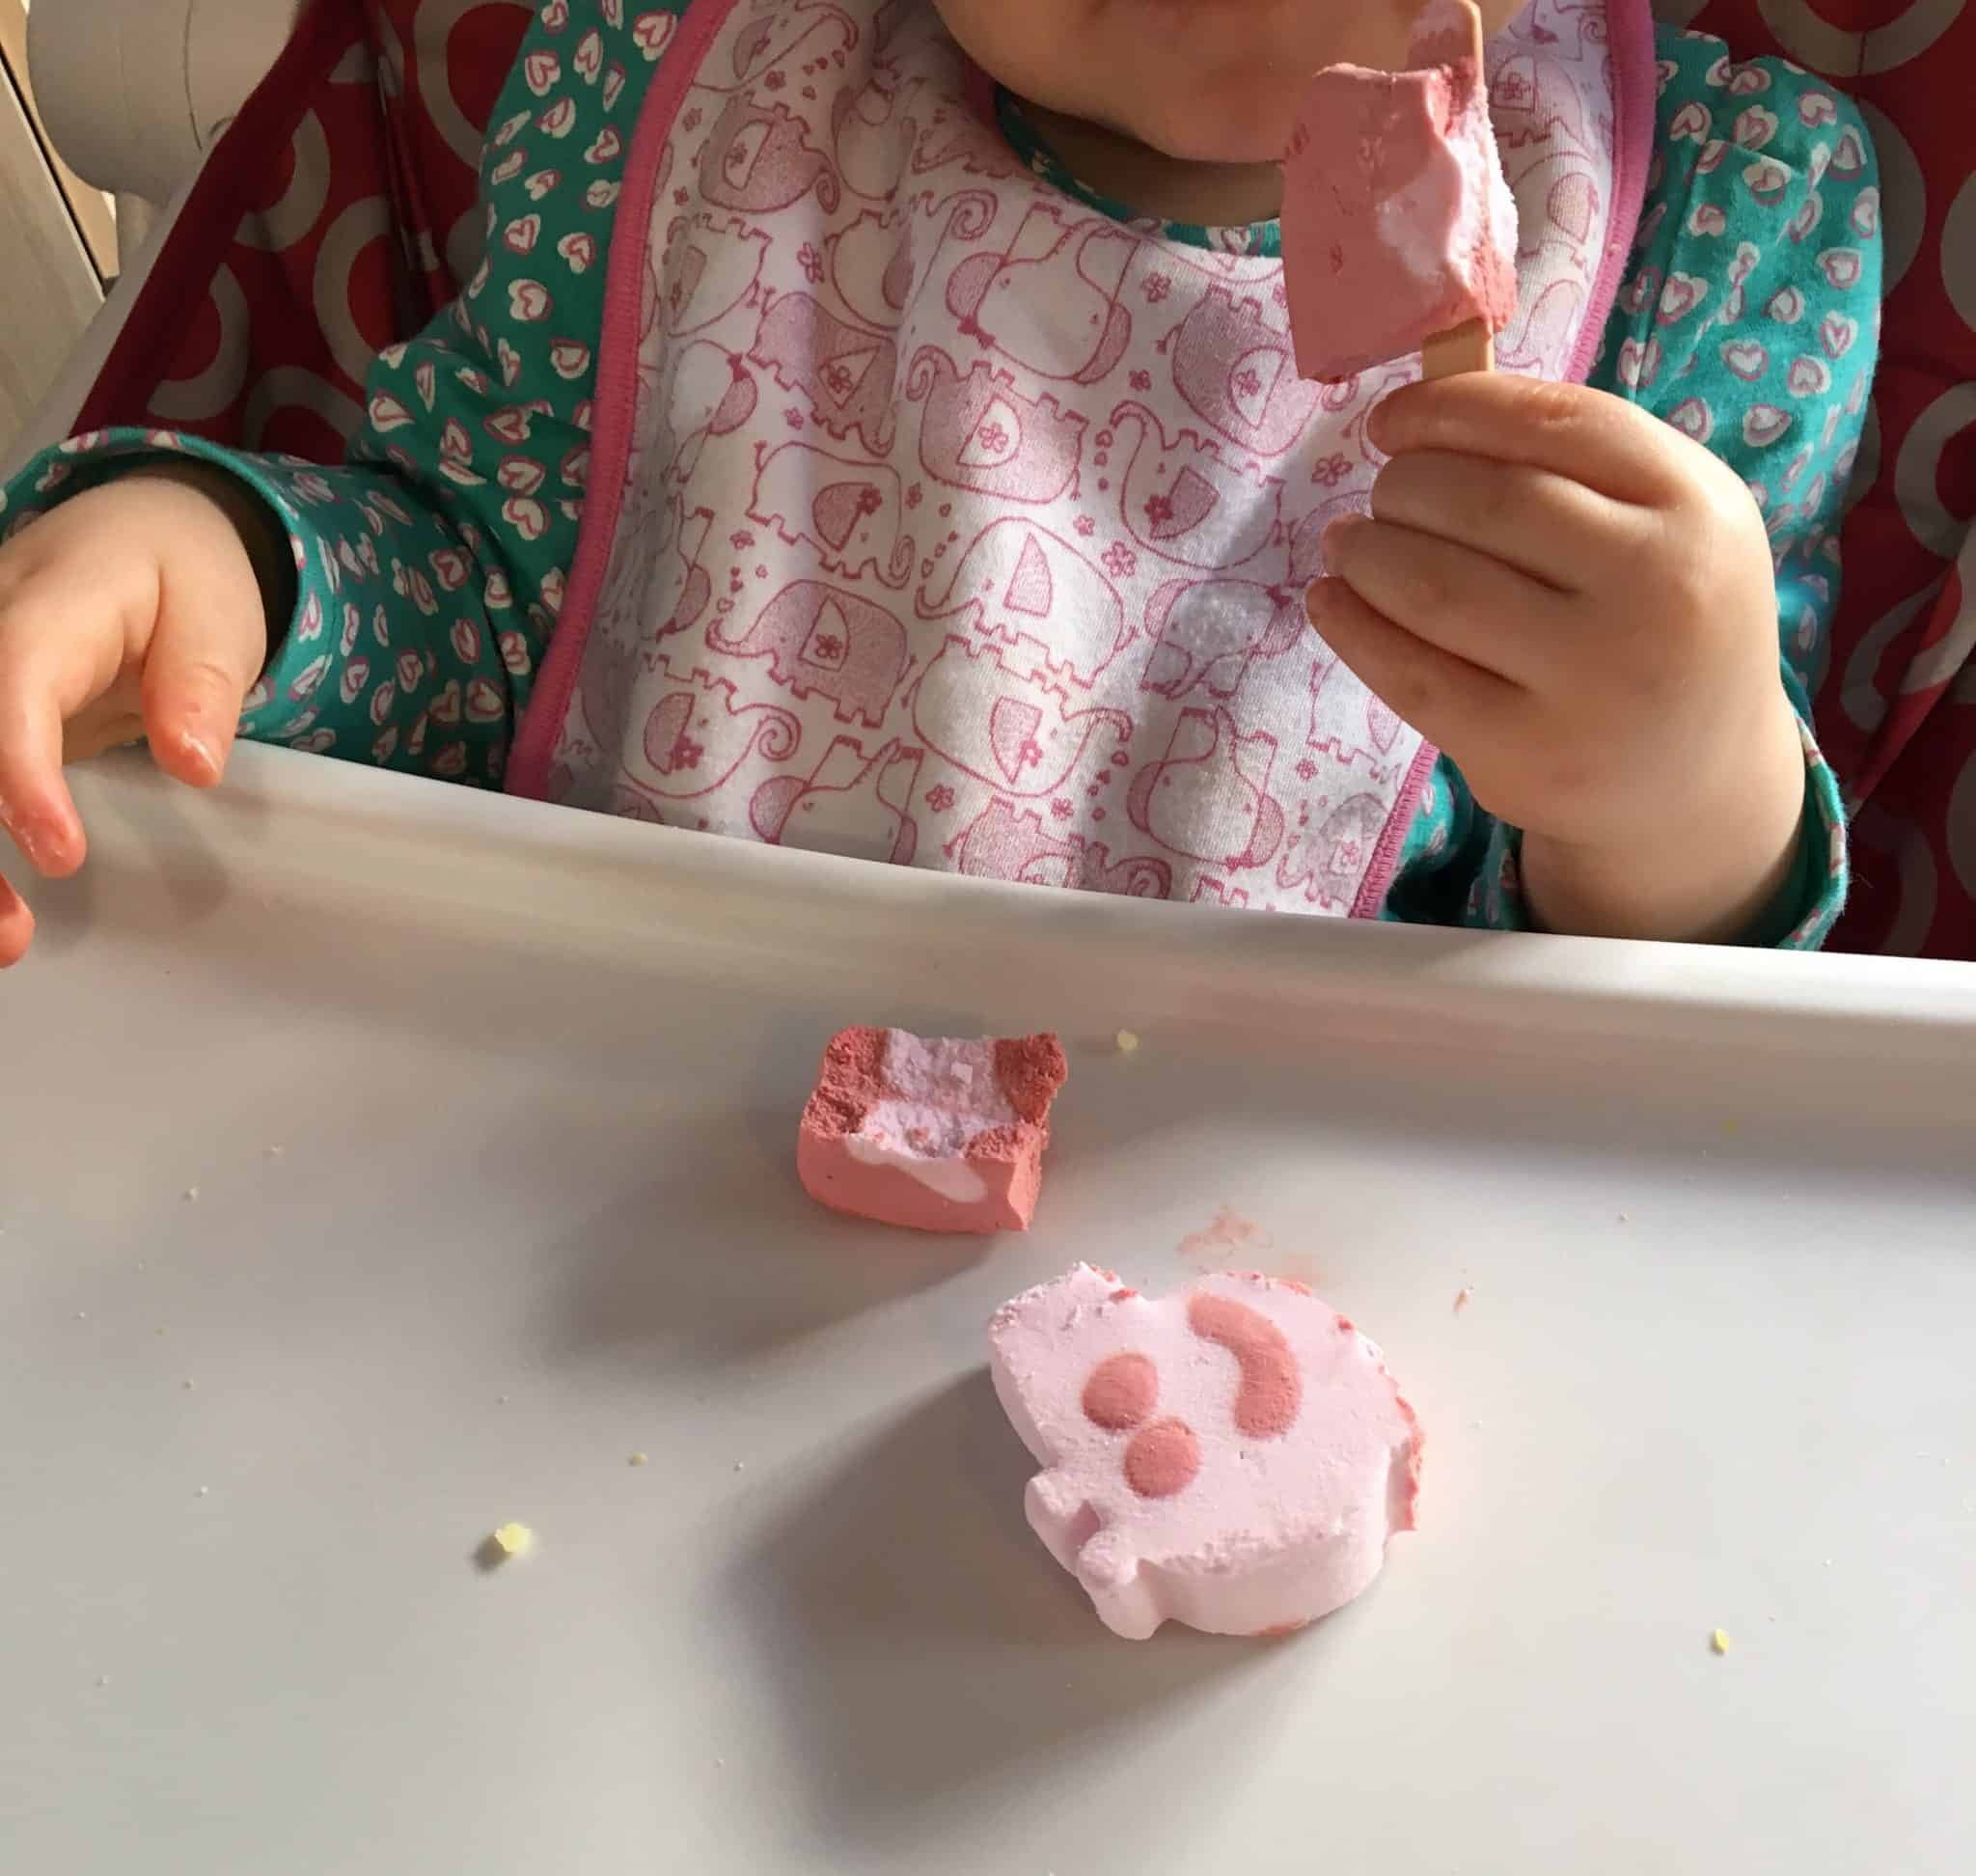 Baby girl eating peppa pig ice cream lollies